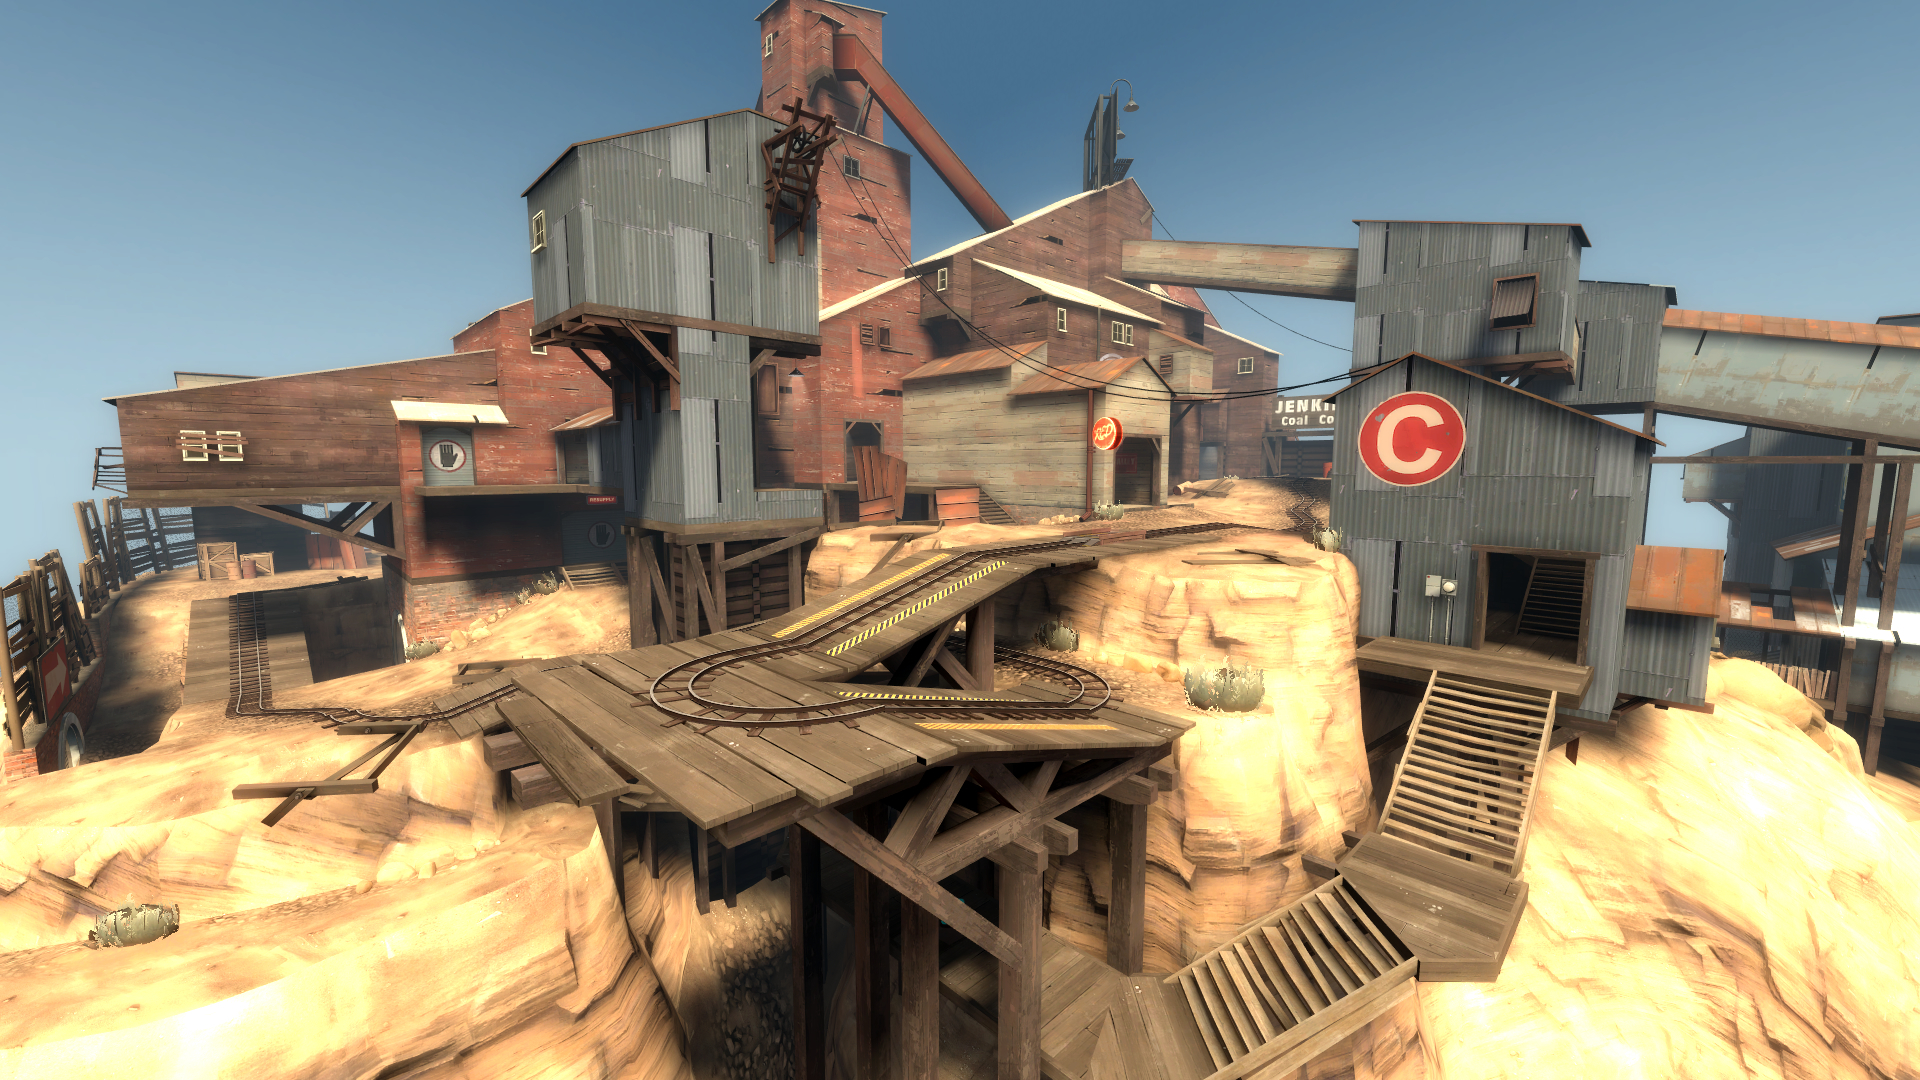 Team fortress architecture HD Wallpaper